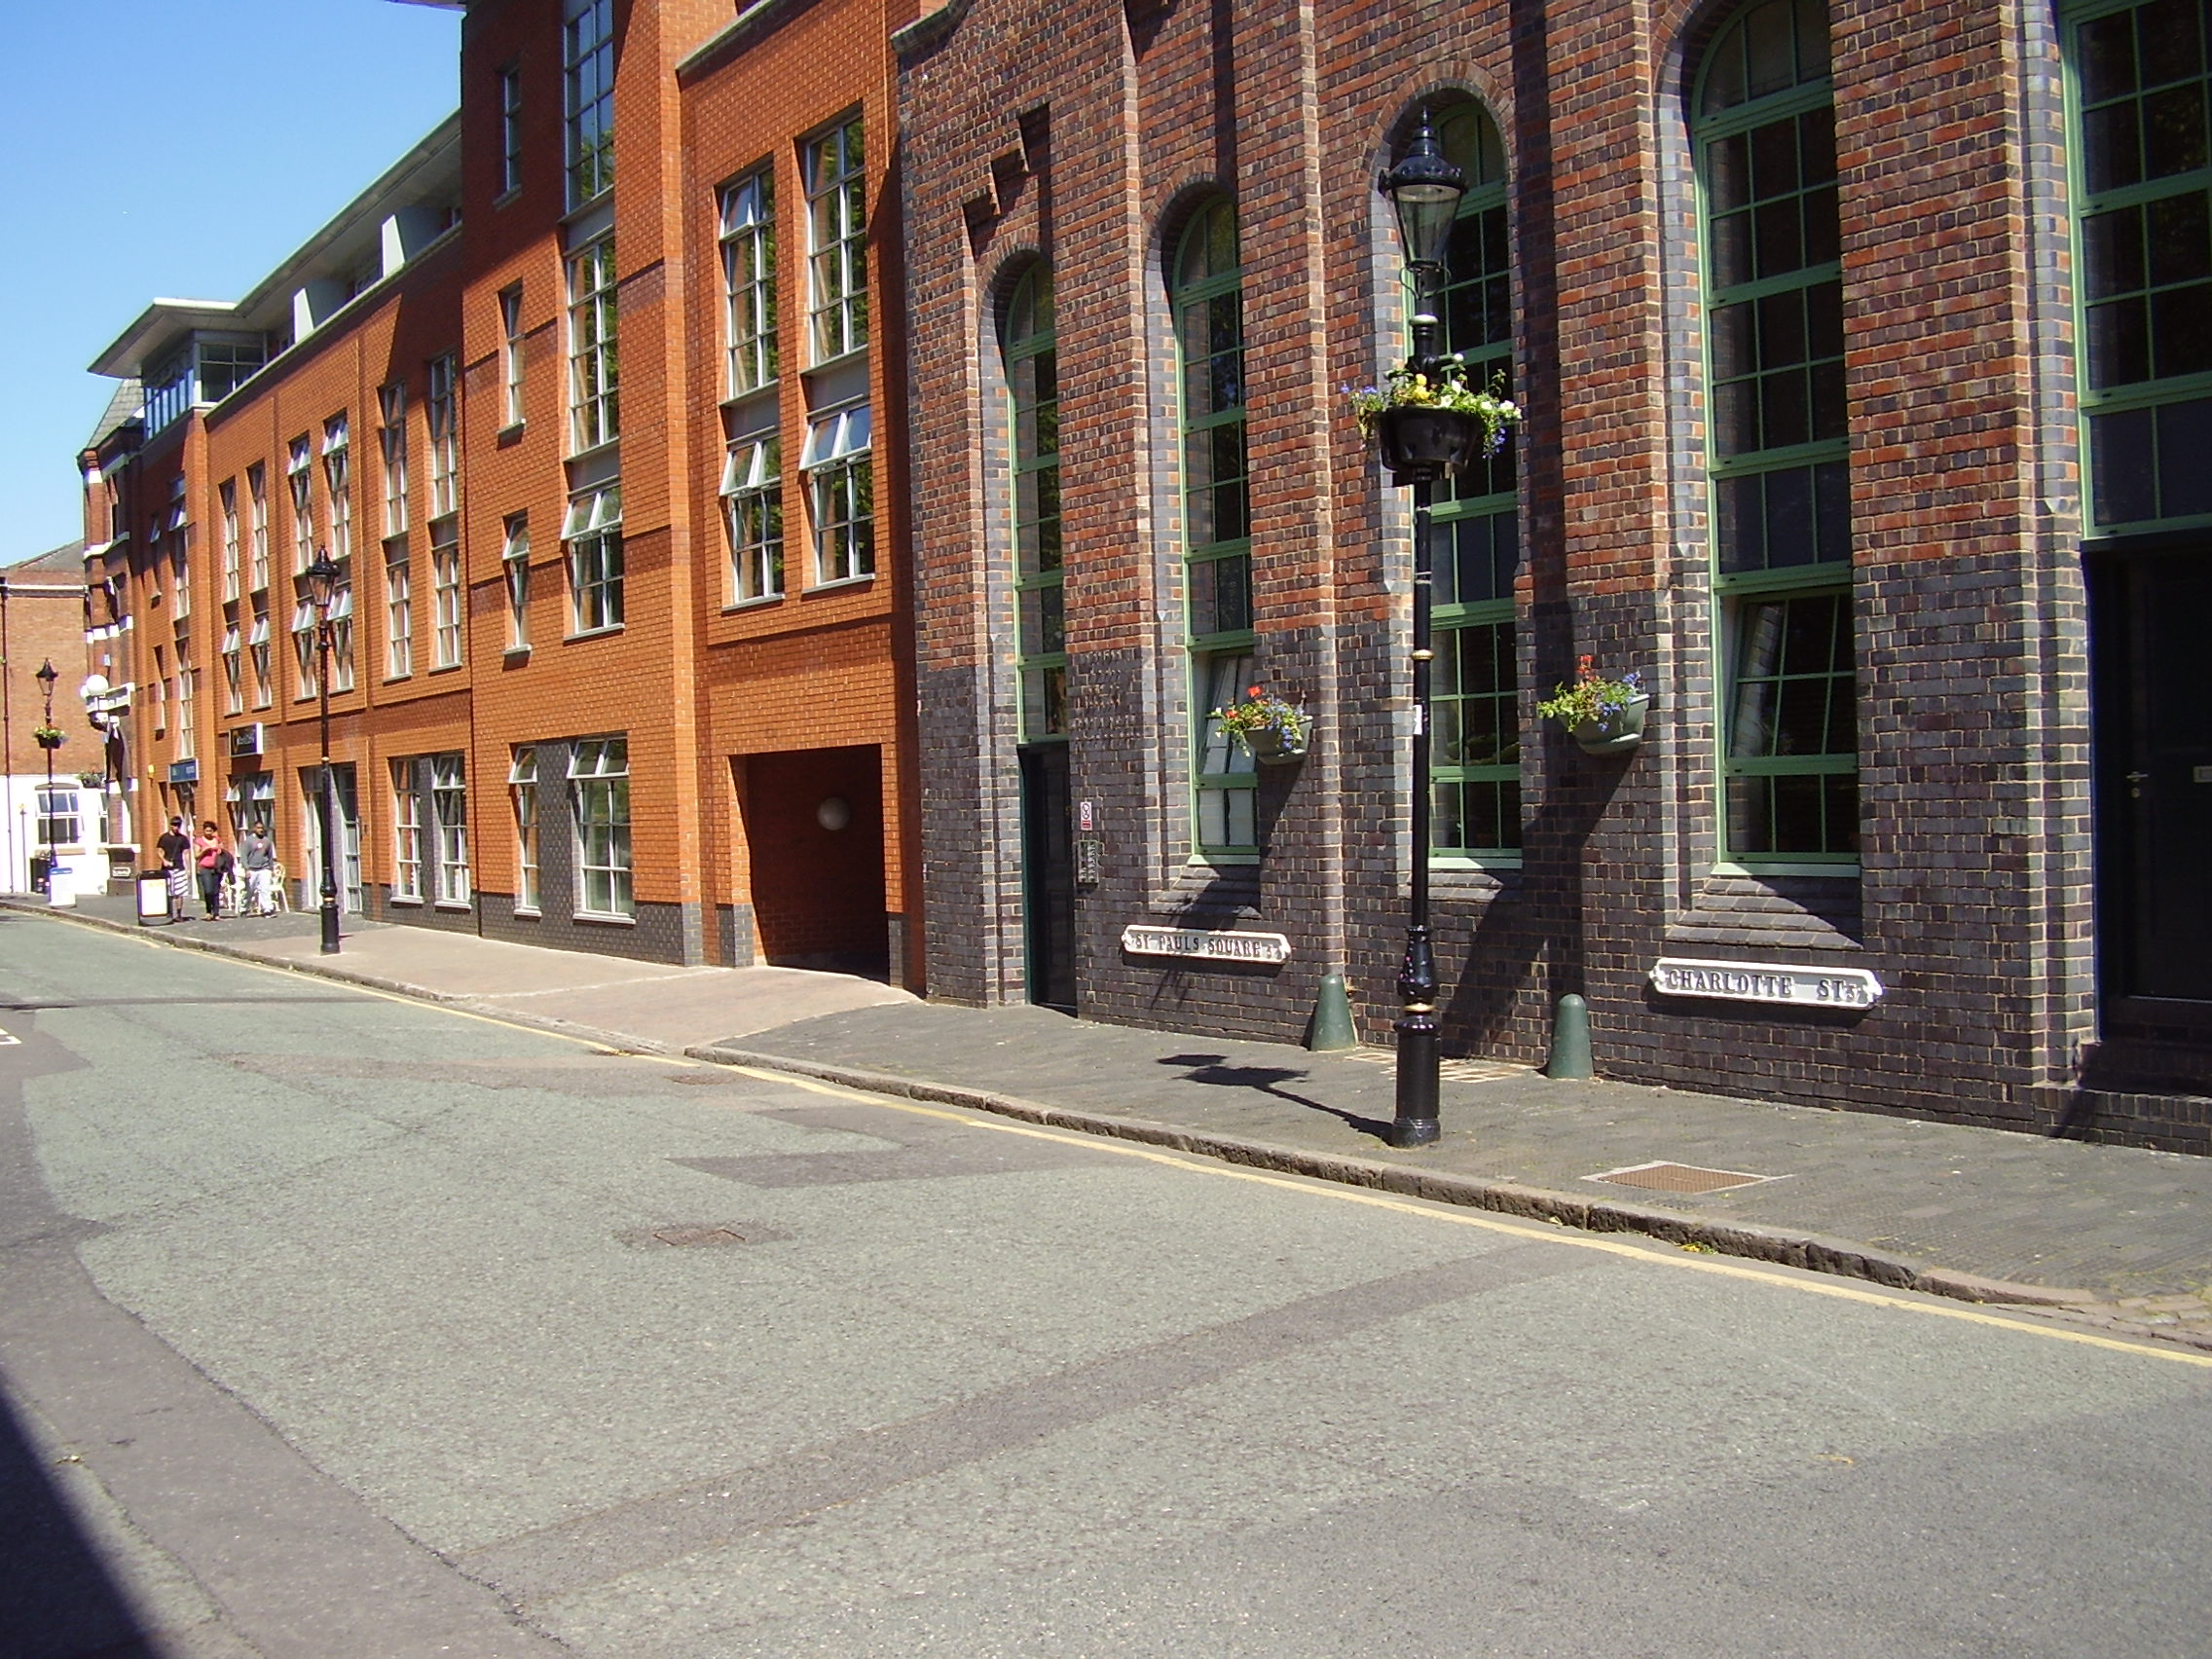 2008 Street view photo 28 of the Jewellery Quarter Birmingham